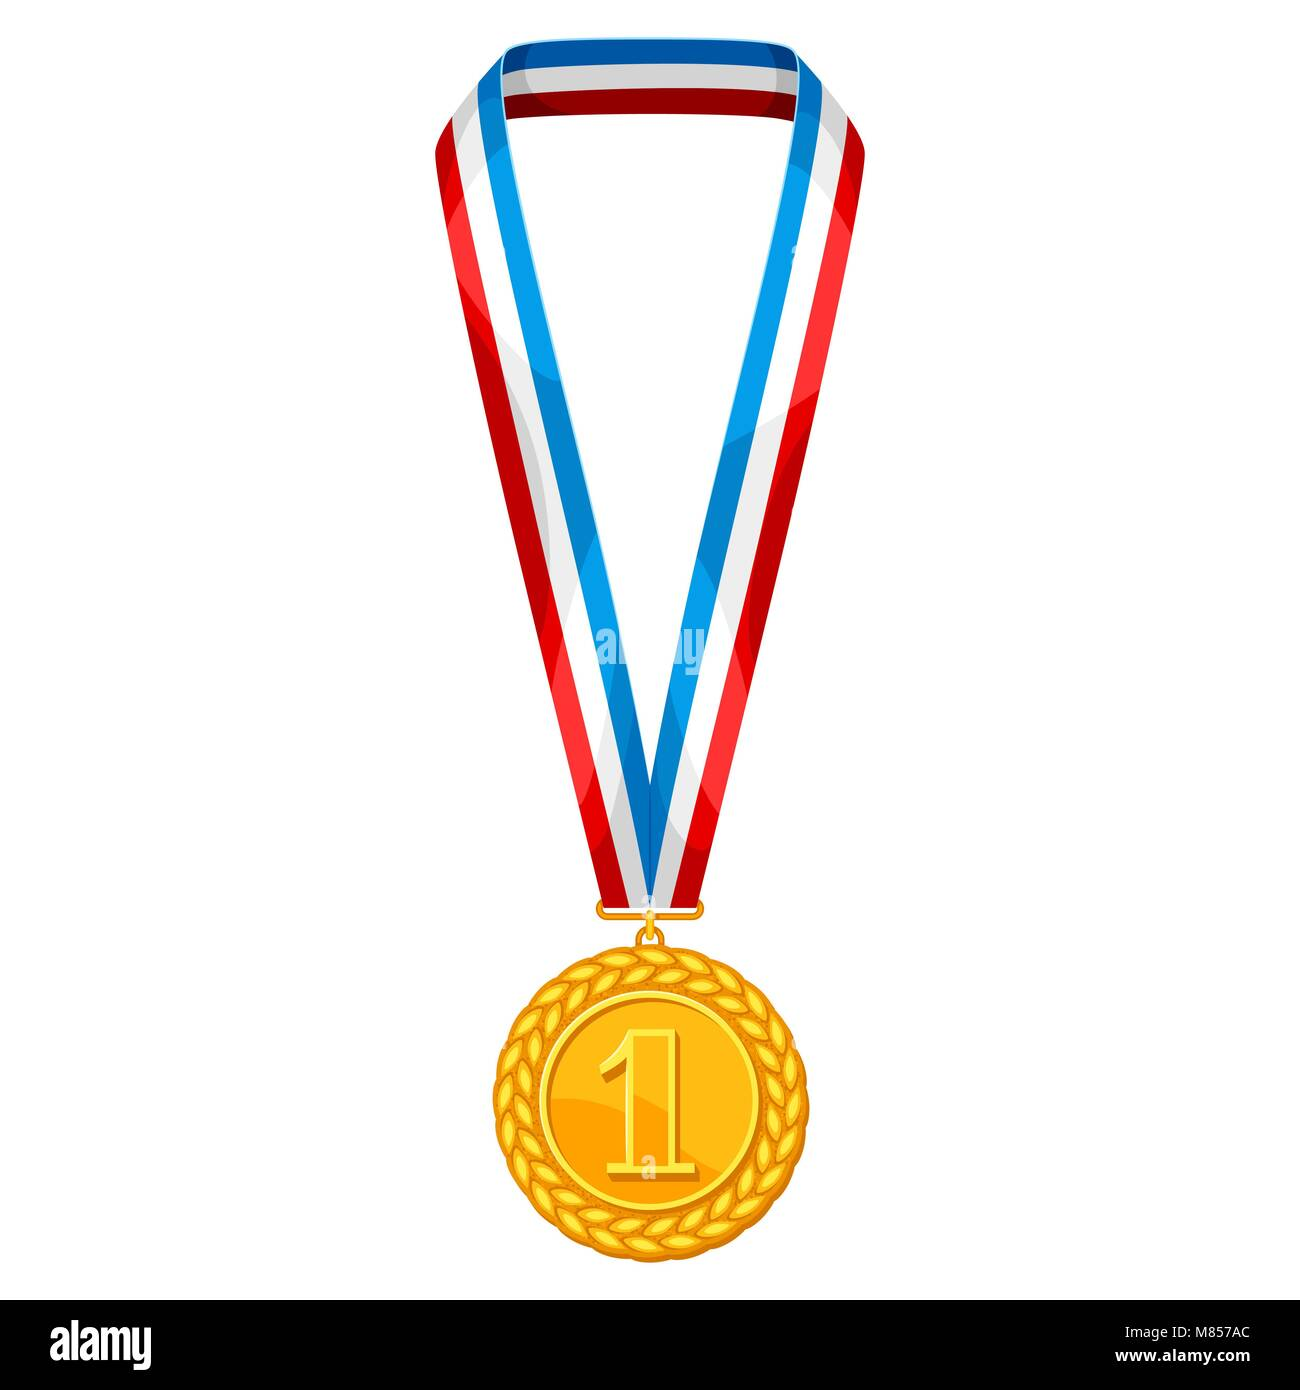 Realistic gold medal with multi colored ribbon. Illustration of award for sports or corporate competitions - Stock Vector